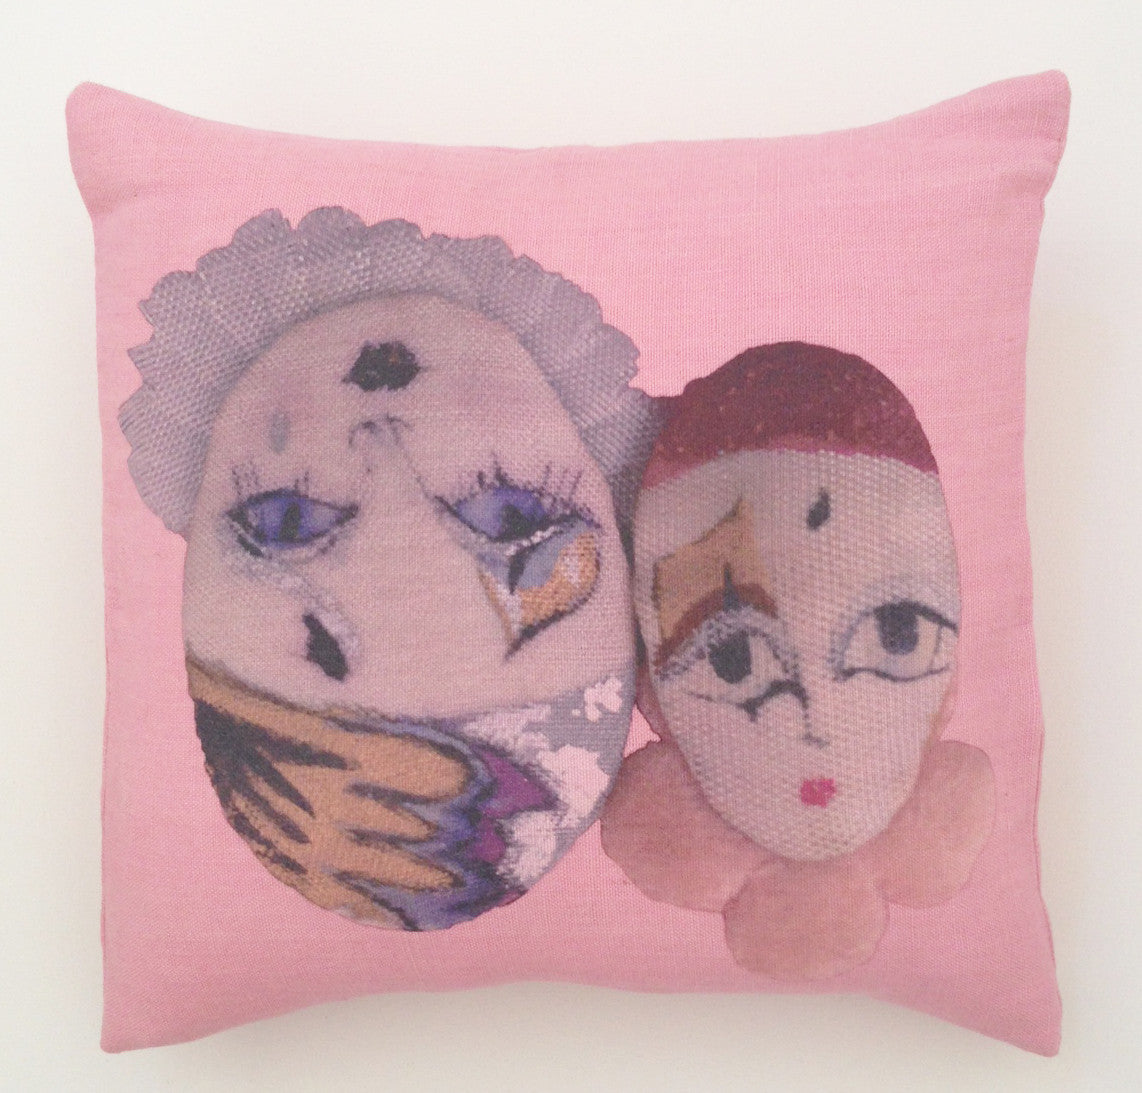 Anciennes Twins pillow II - Rose